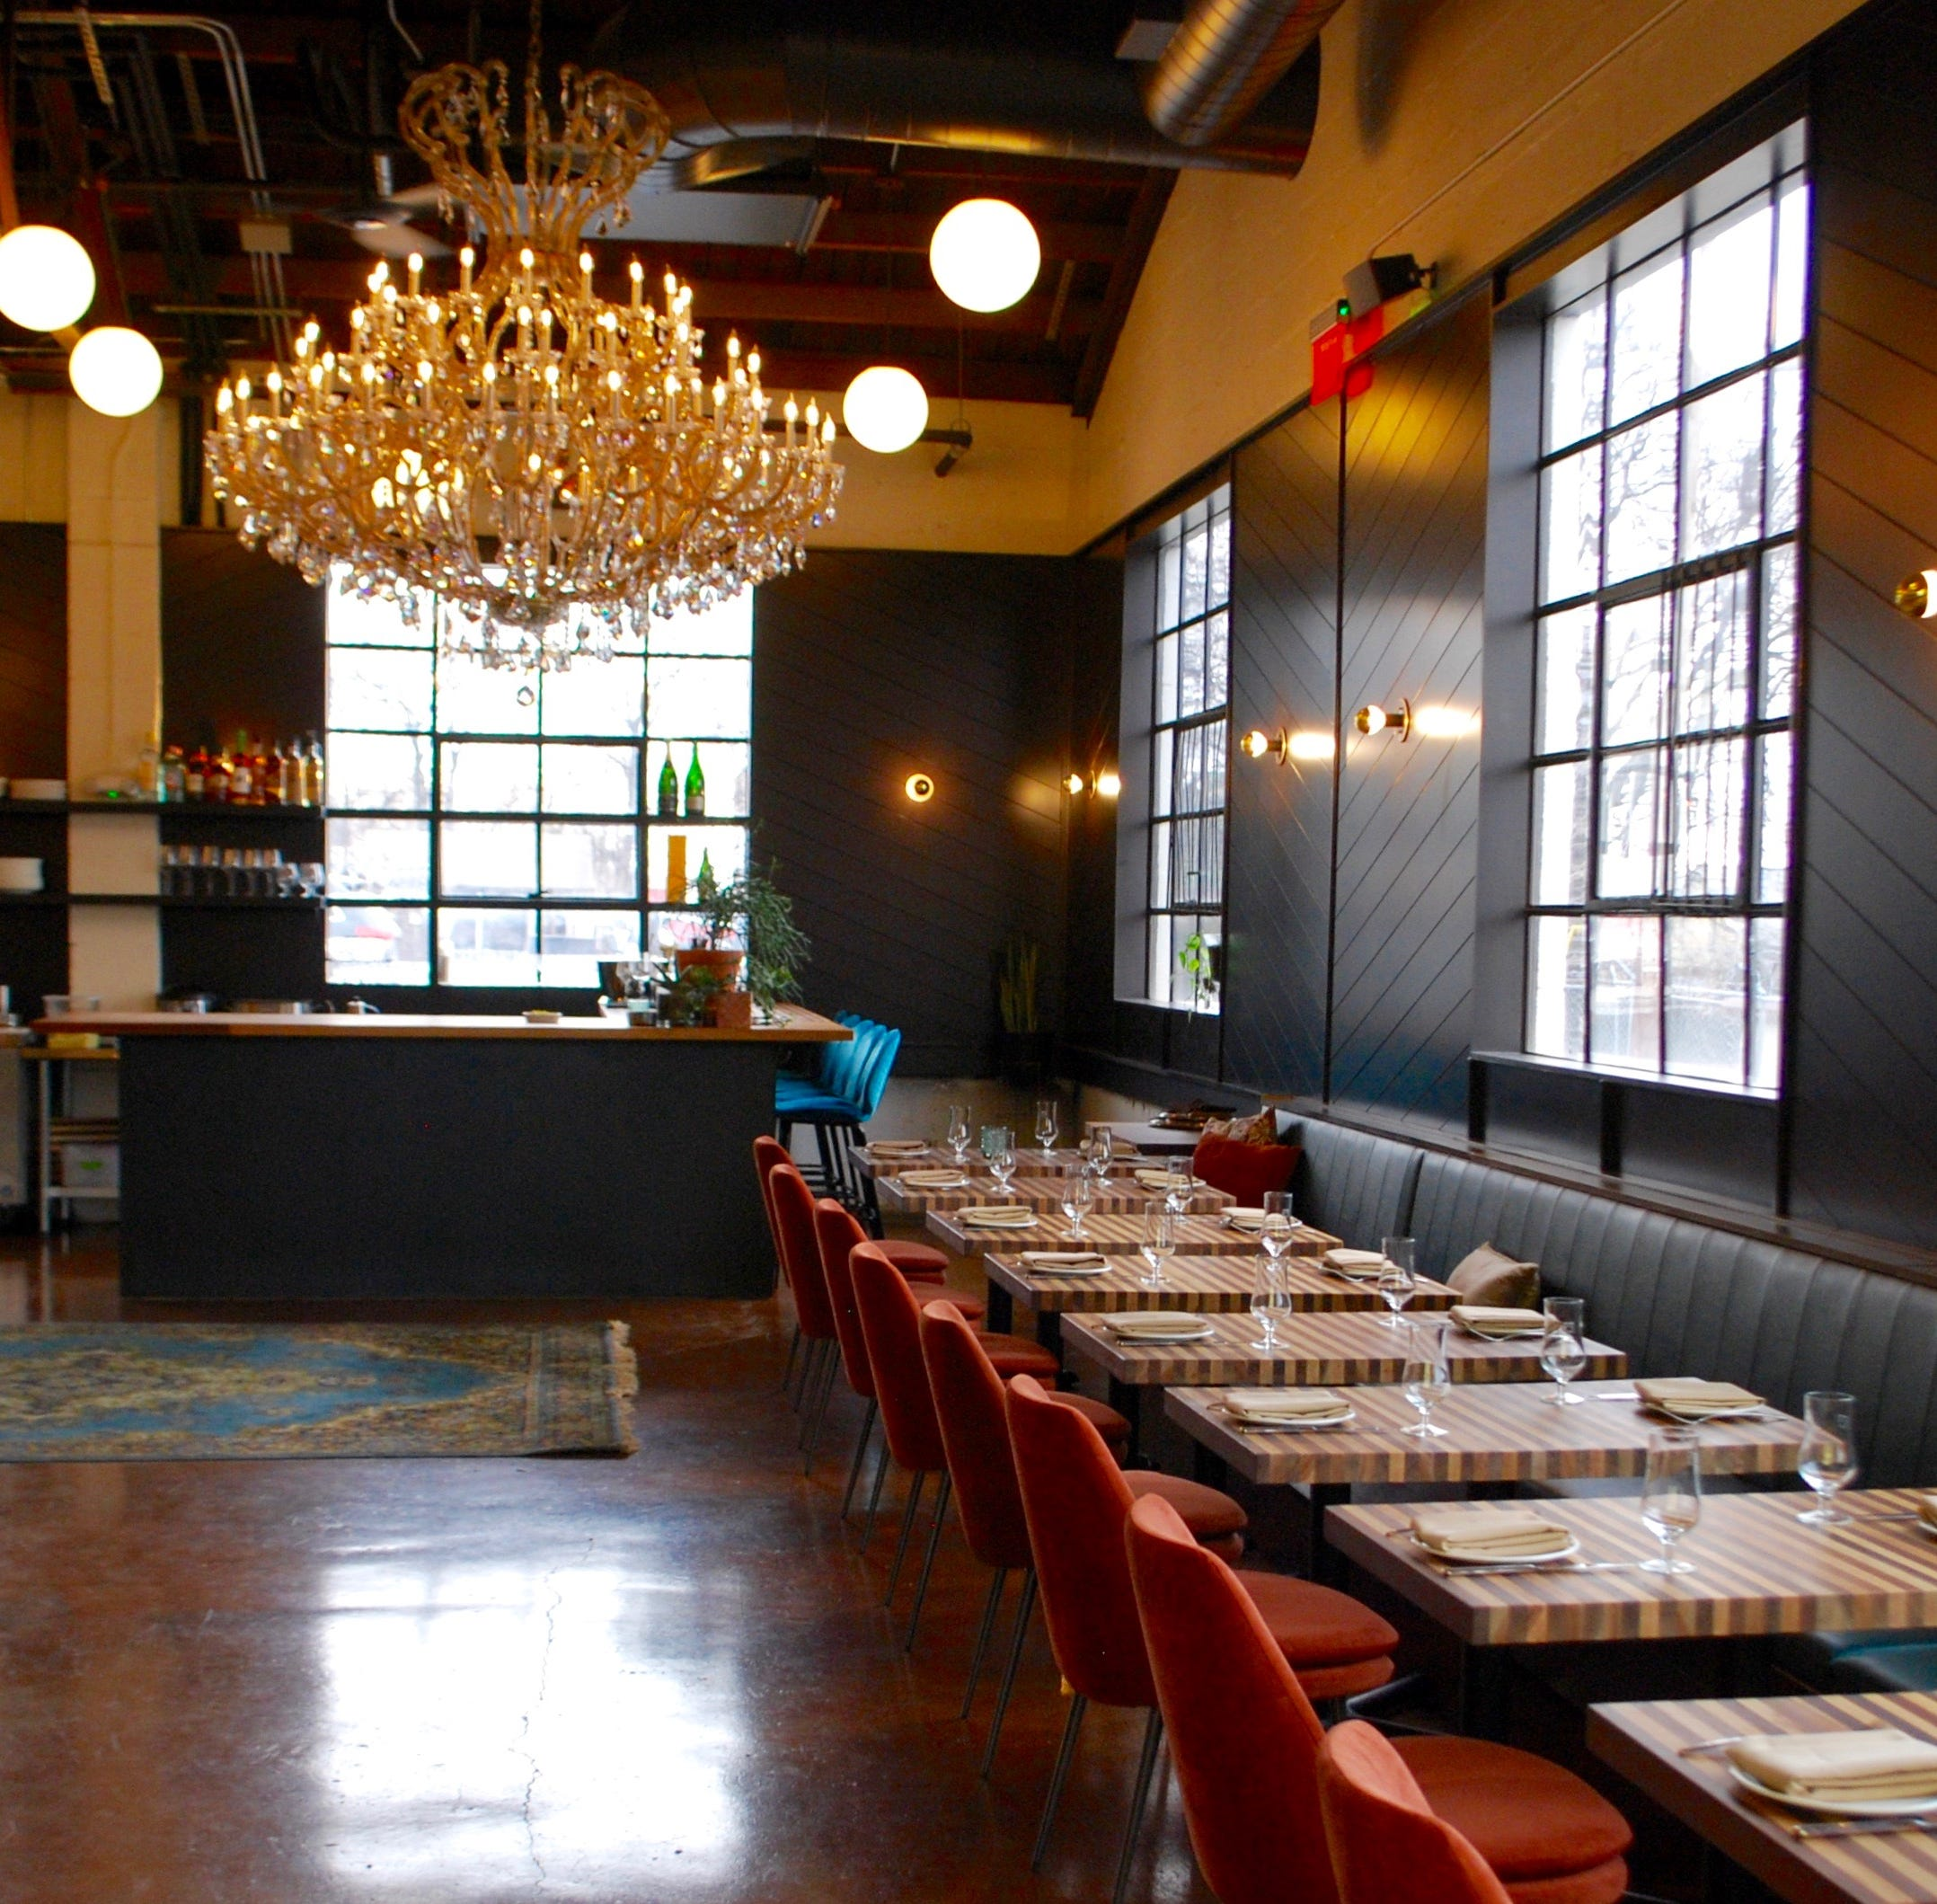 Review: Tailor Nashville offers authentic South Asian cuisine, with a personal touch